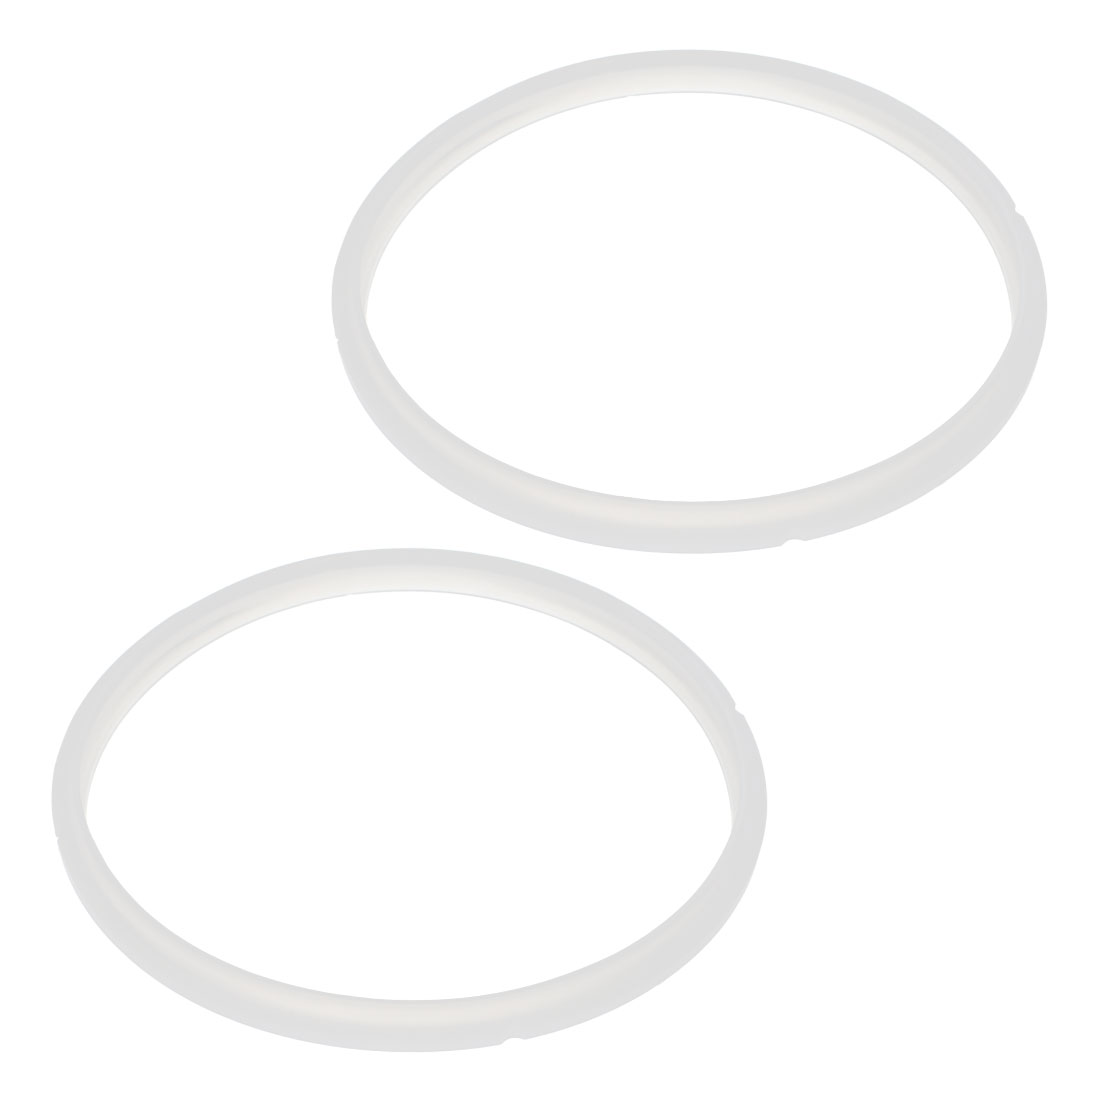 2PCS 19.5cm Inner Dia Gasket Sealing Ring for 3-4L Pressure Cookers